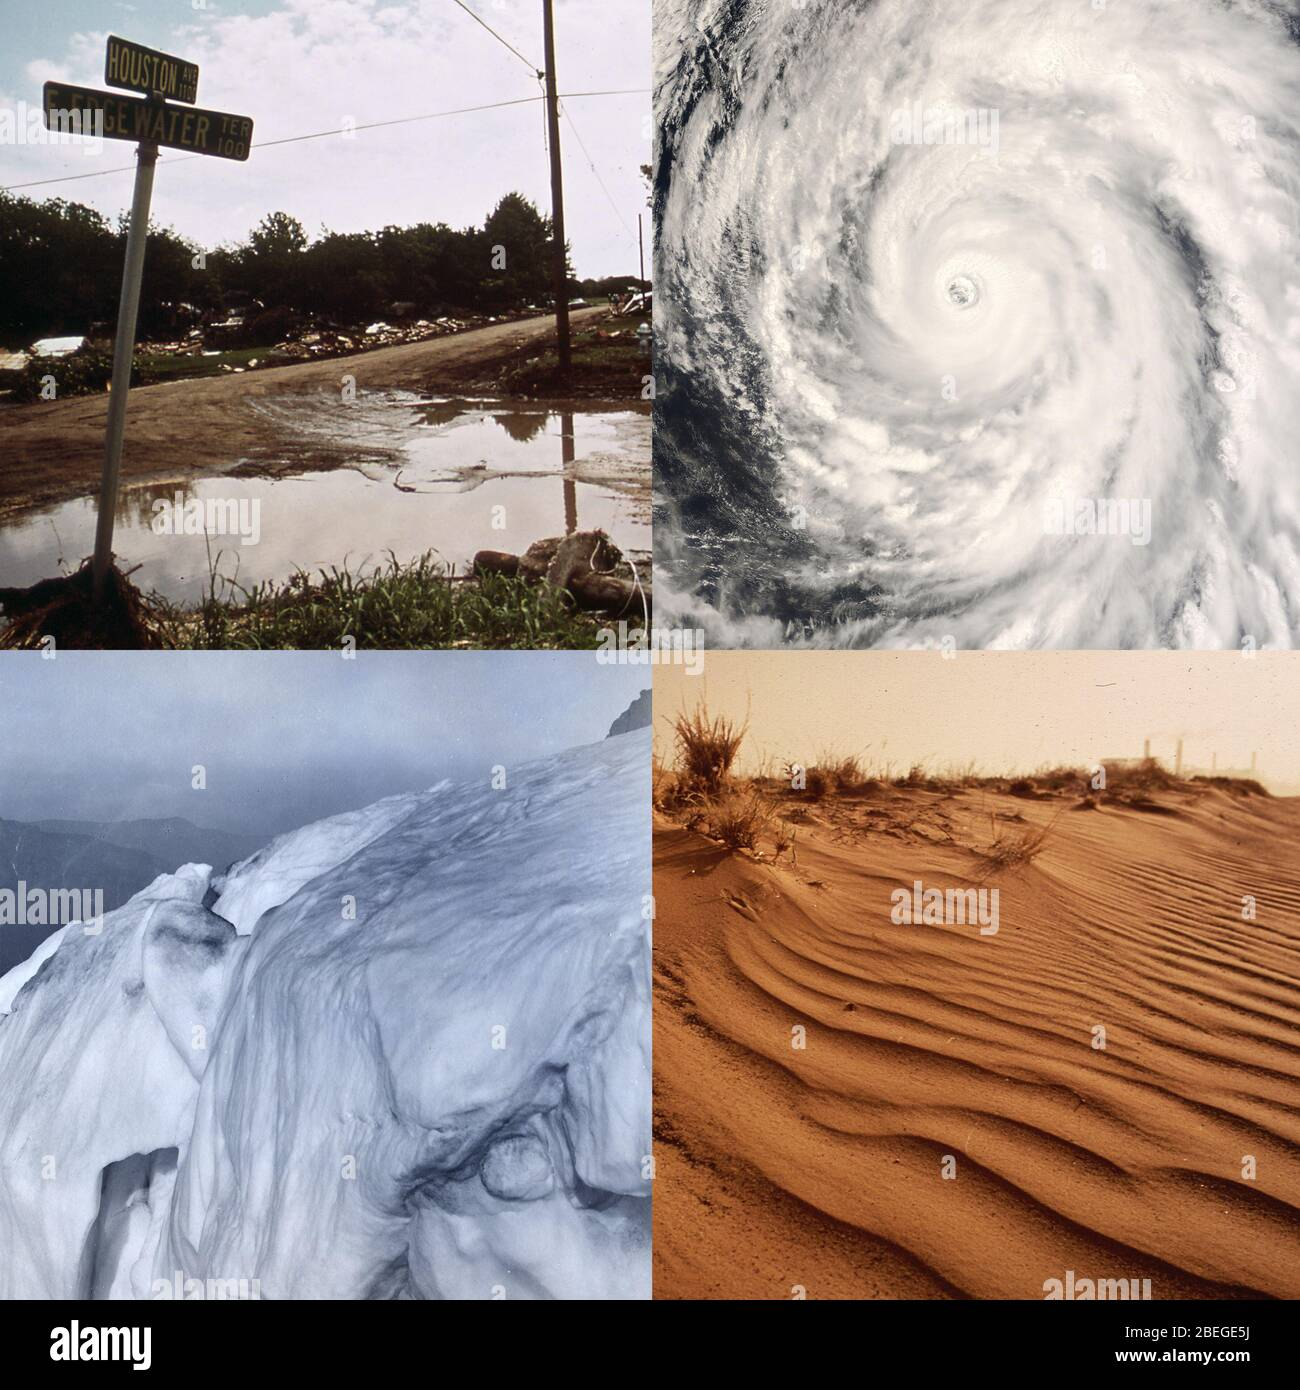 Extreme Weather Due to Global Warming Stock Photo - Alamy